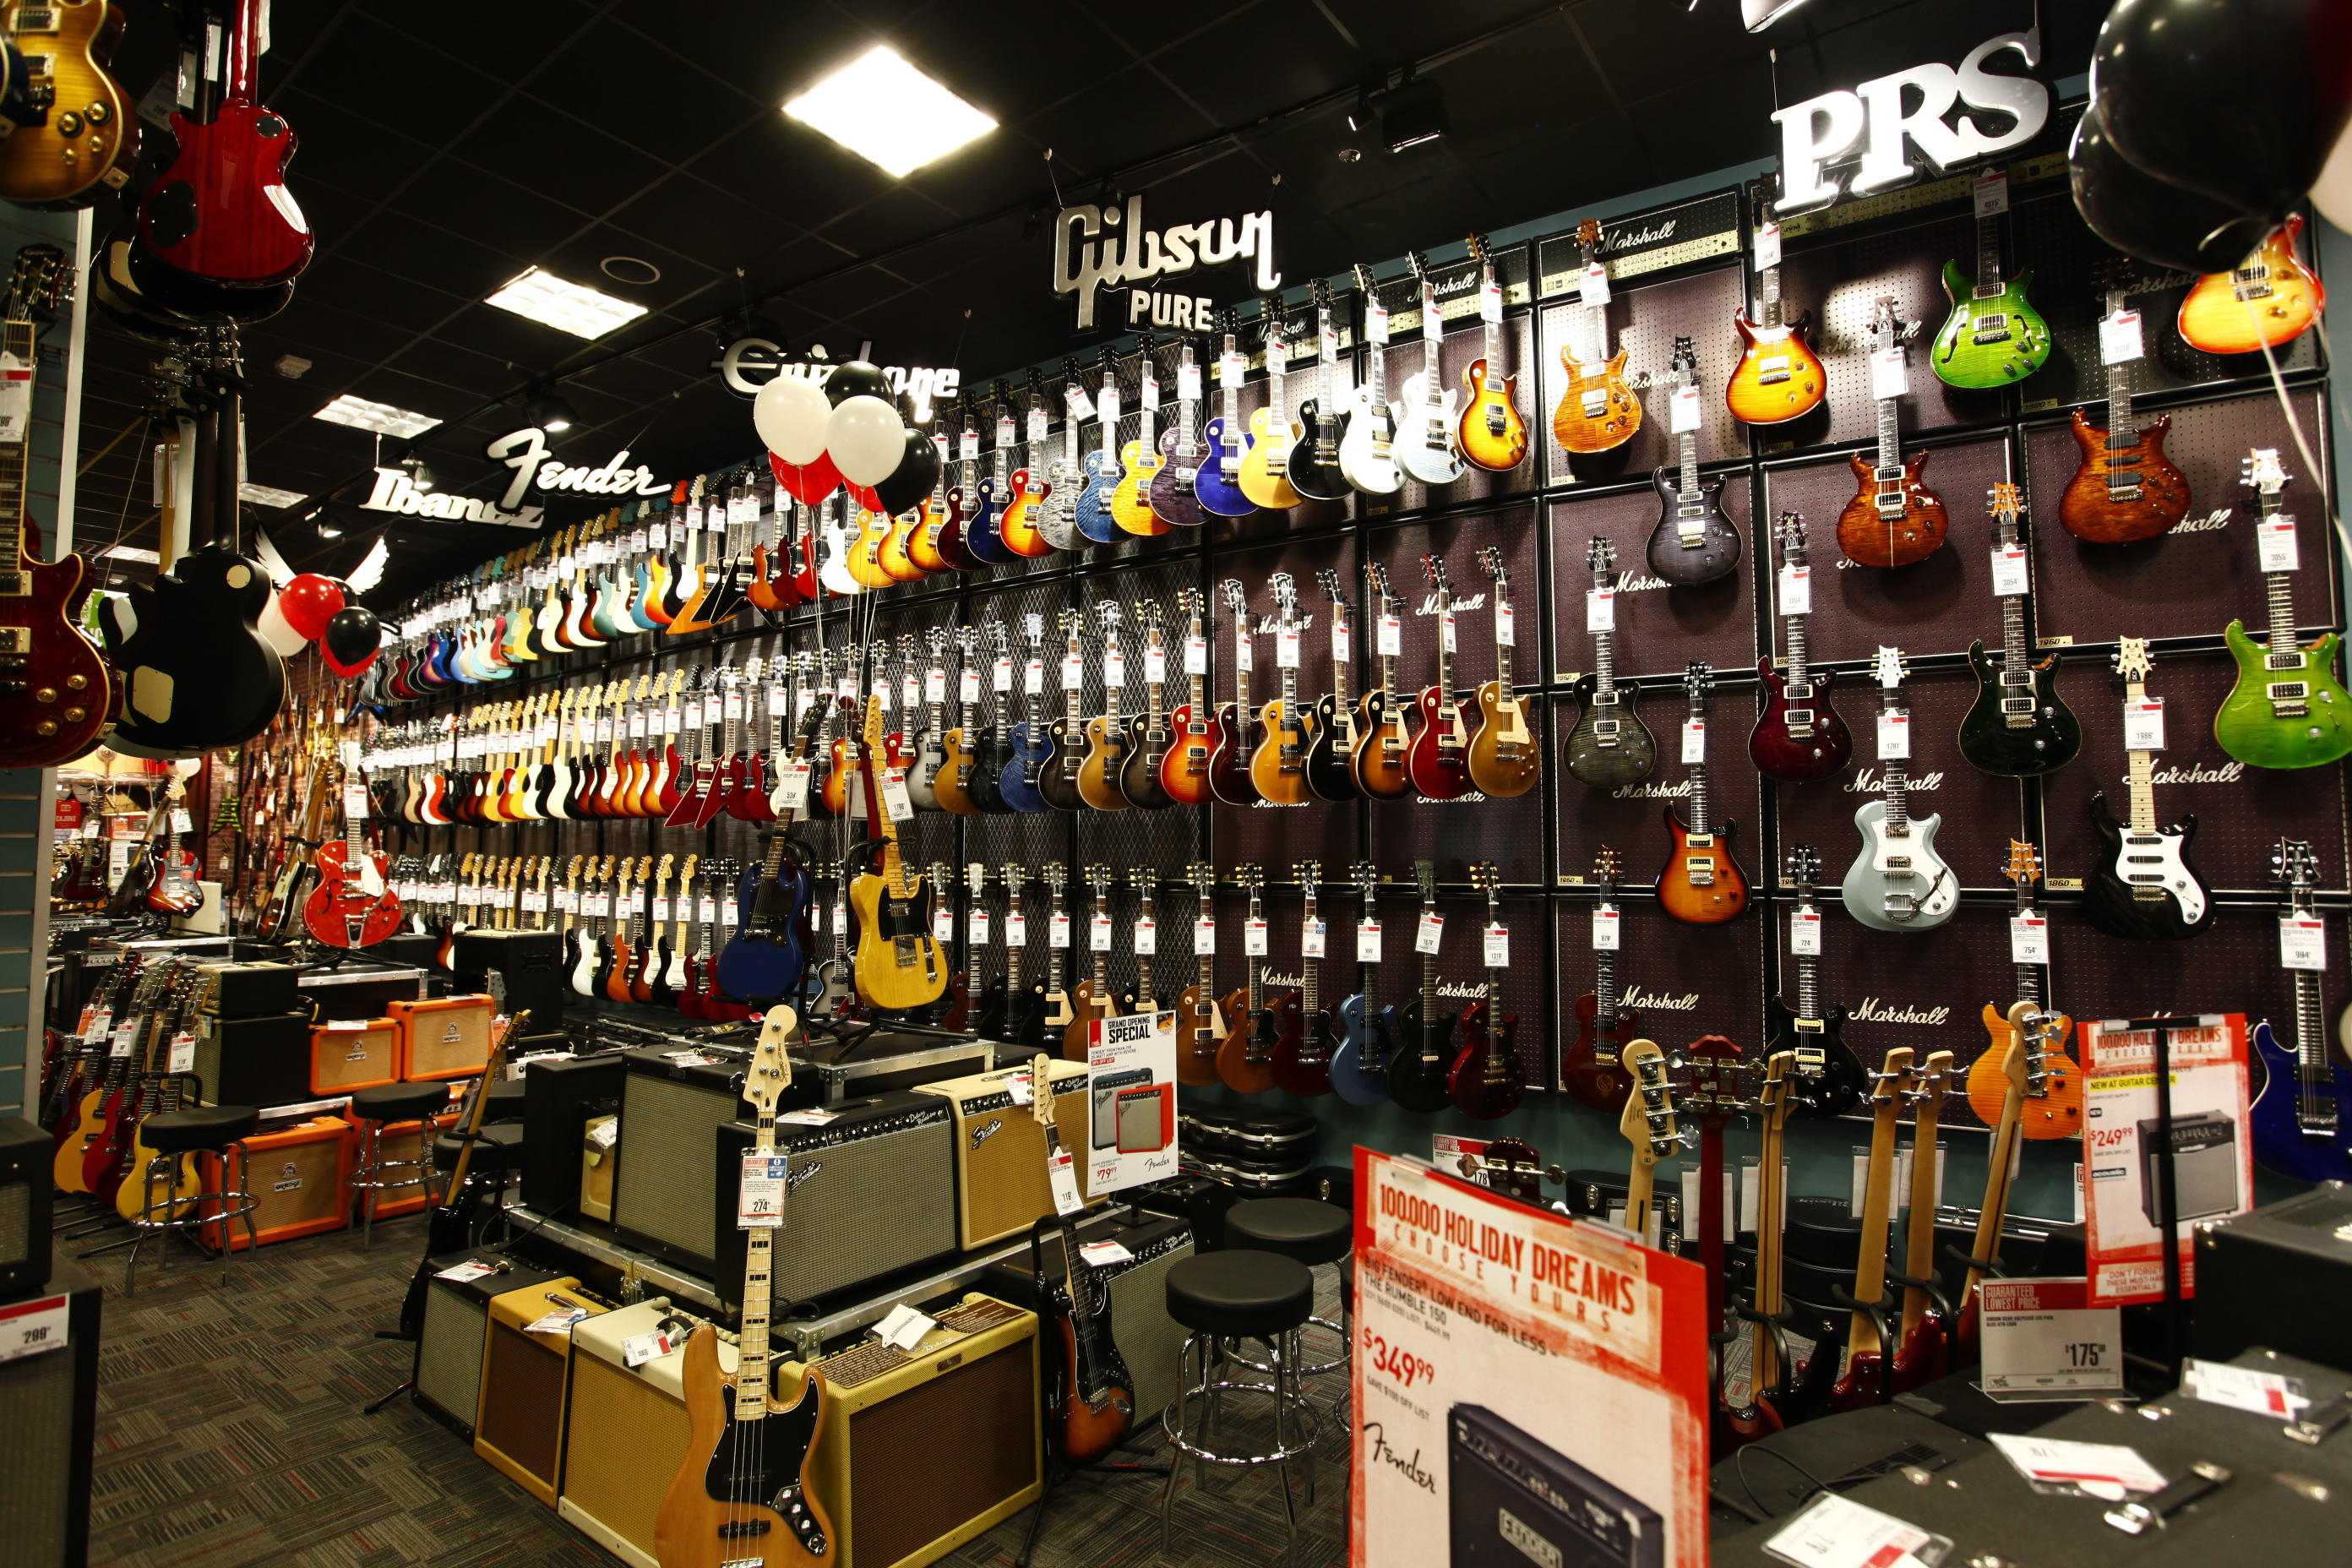 Locations. Photos. Videos. Notes. Events. Community. Info and Ads. See more of Guitar Center on Facebook. Log In. or. But why stop at only one Rose Gold guitar? Guitar Center and American Red Cross for California Wildfire Relief. 2.